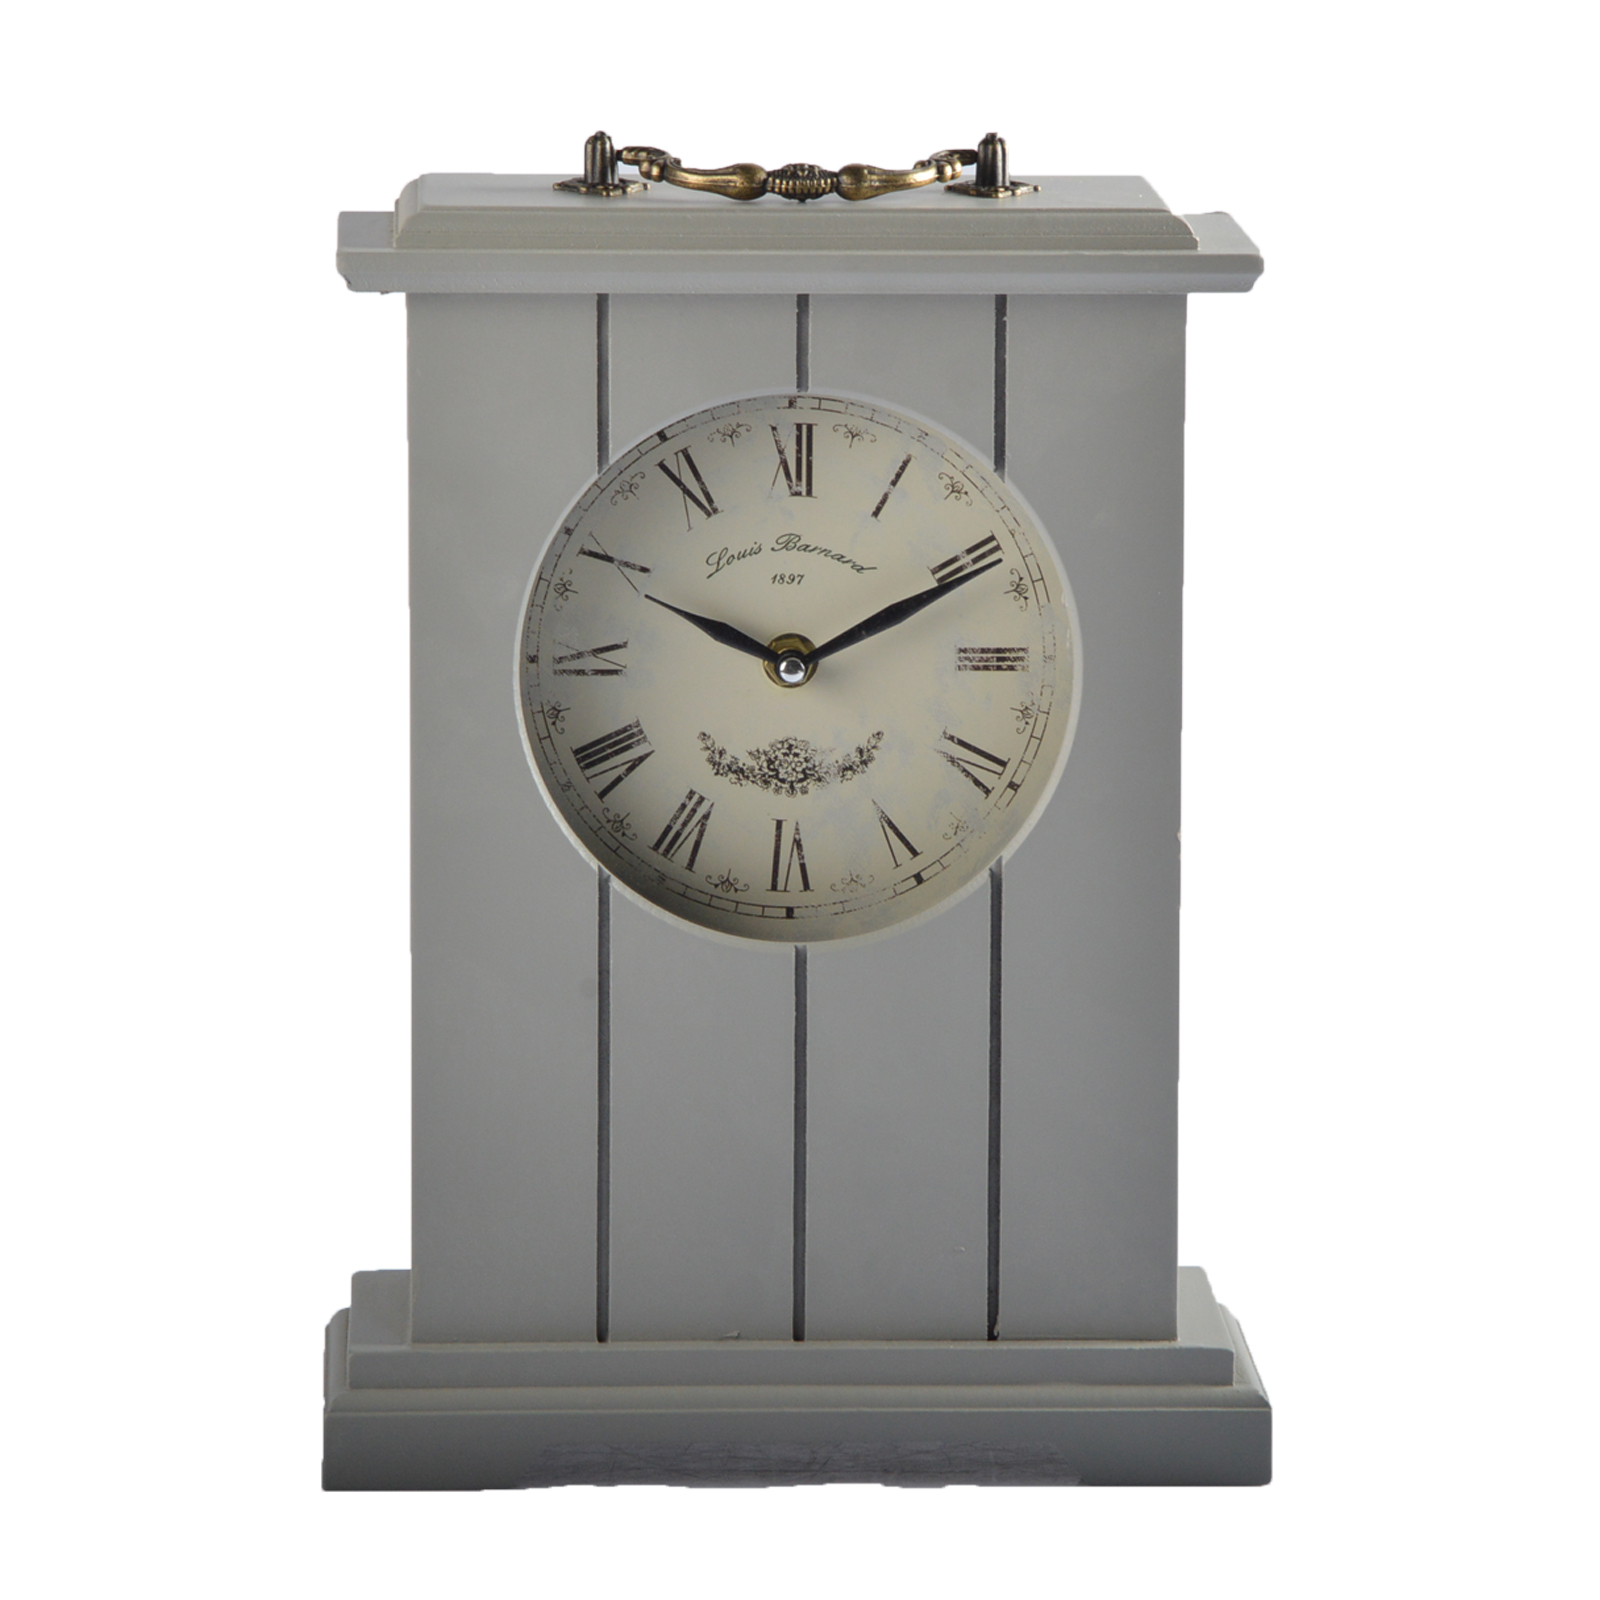 31cm standuhr tischuhr uhr holz vintage shabby chic landhaus grau wei ebay. Black Bedroom Furniture Sets. Home Design Ideas